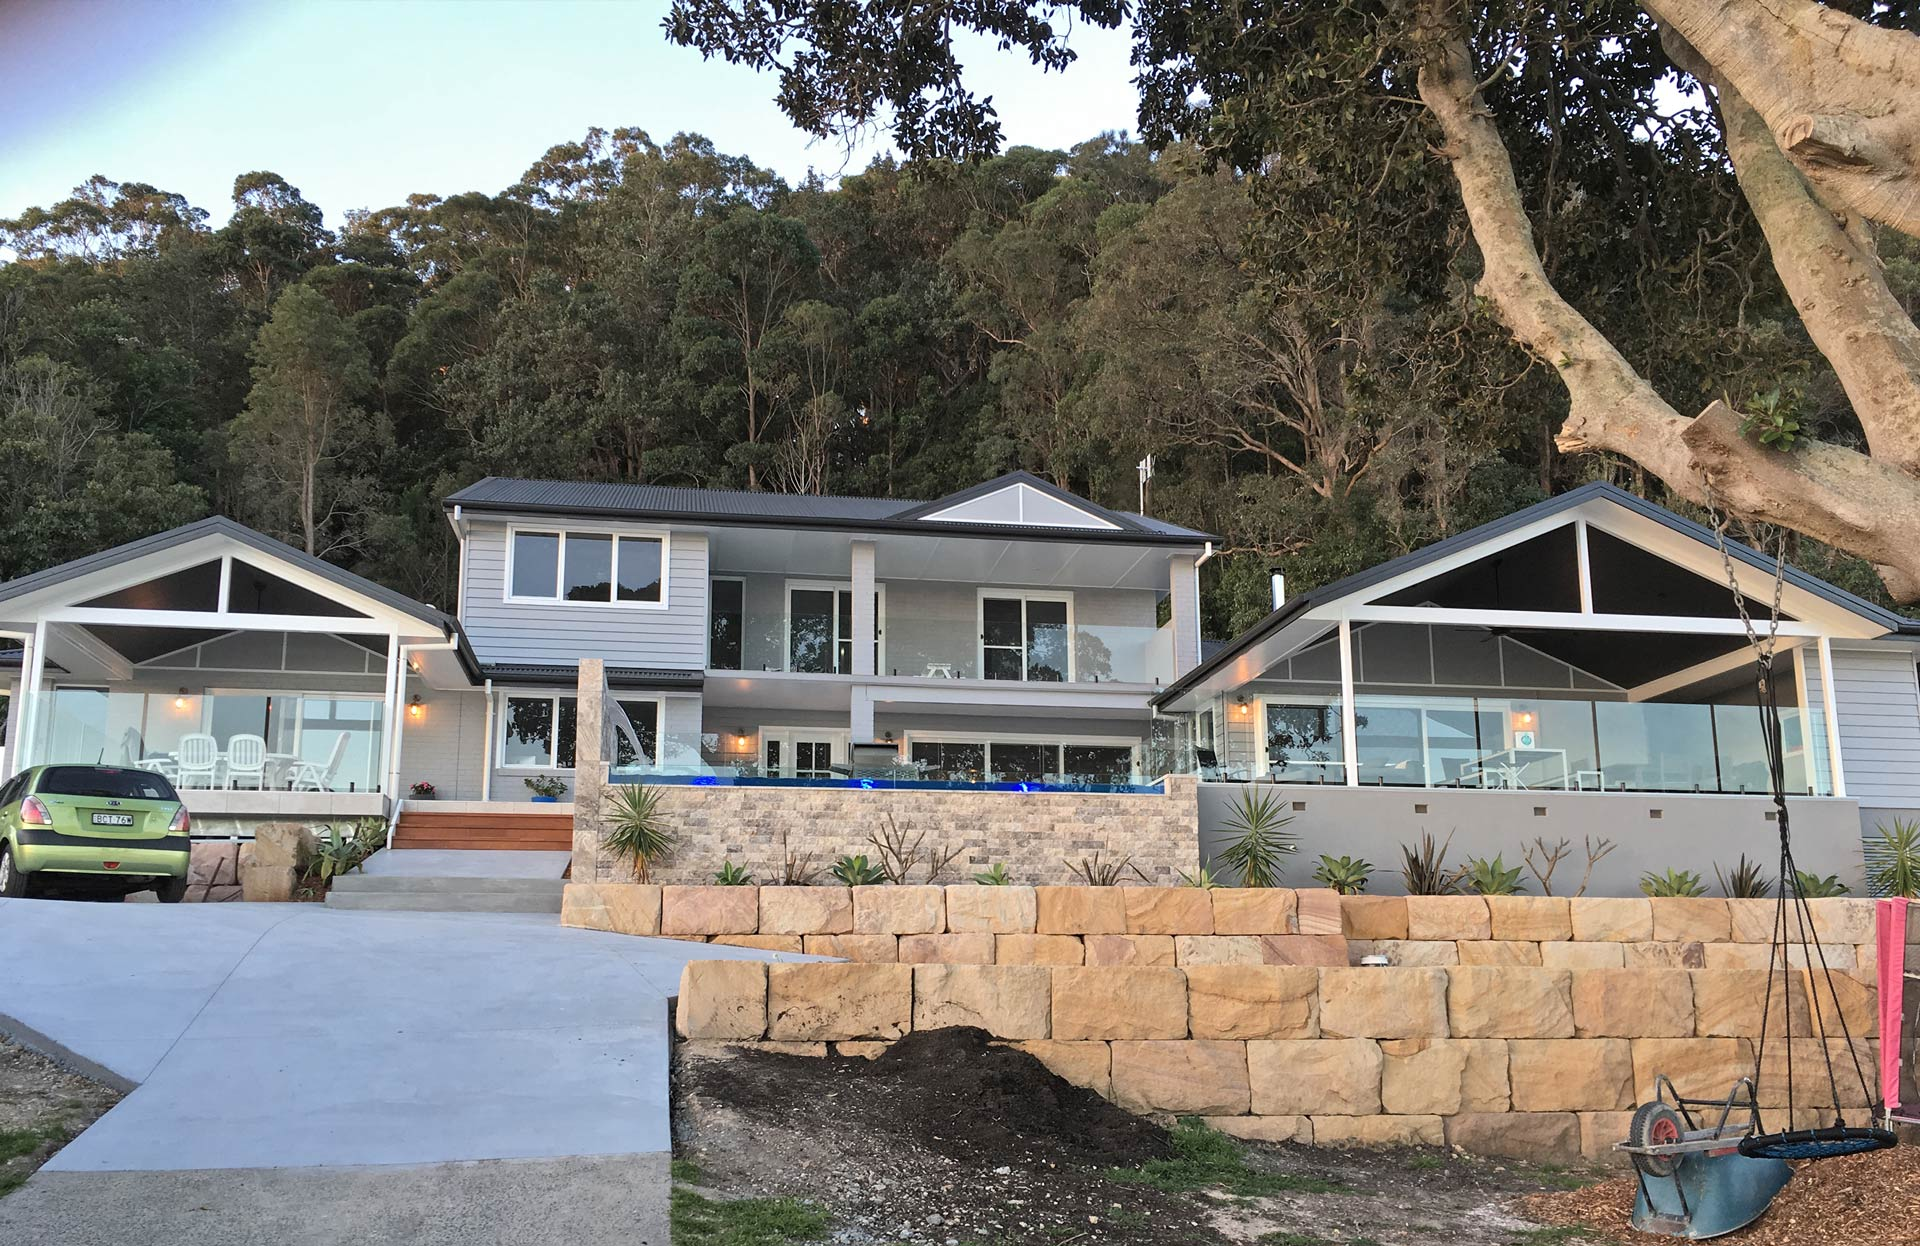 Etchells Building Design - Residential Building Design Service Central Coast